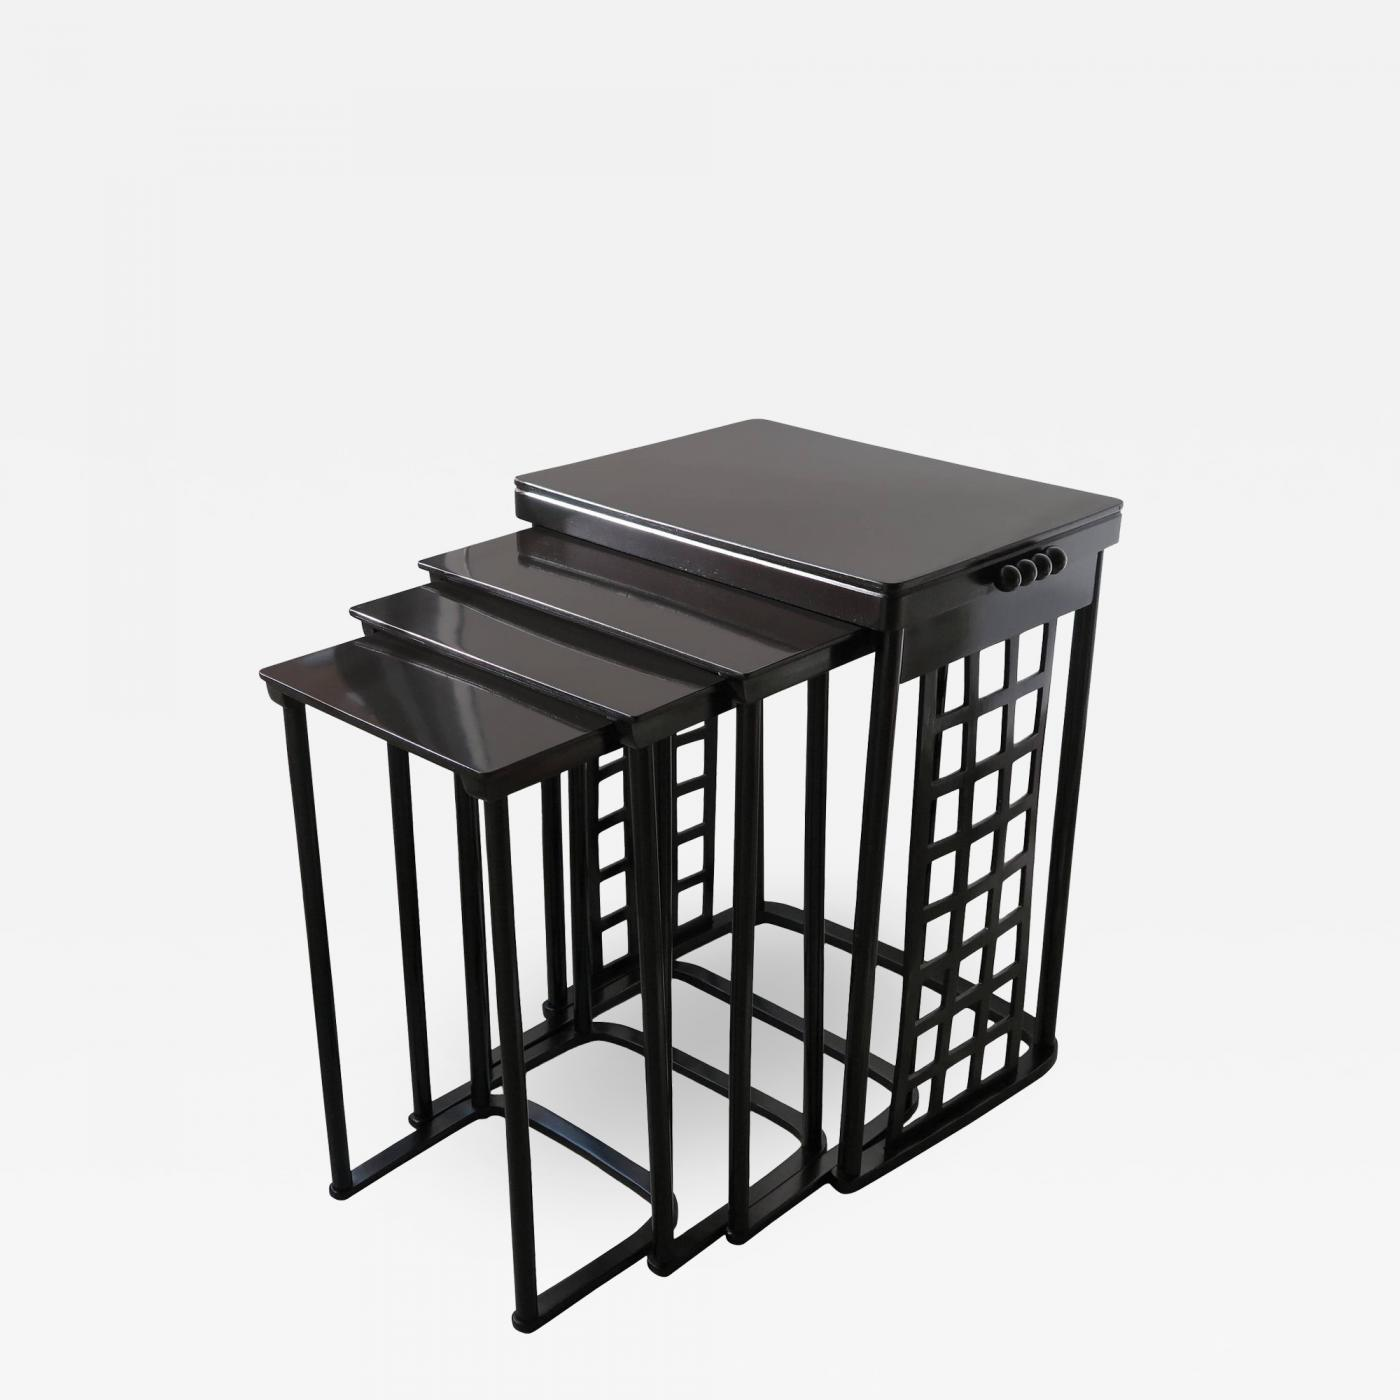 Josef hoffmann josef hoffmann nest of tables with grid listings furniture tables side tables watchthetrailerfo